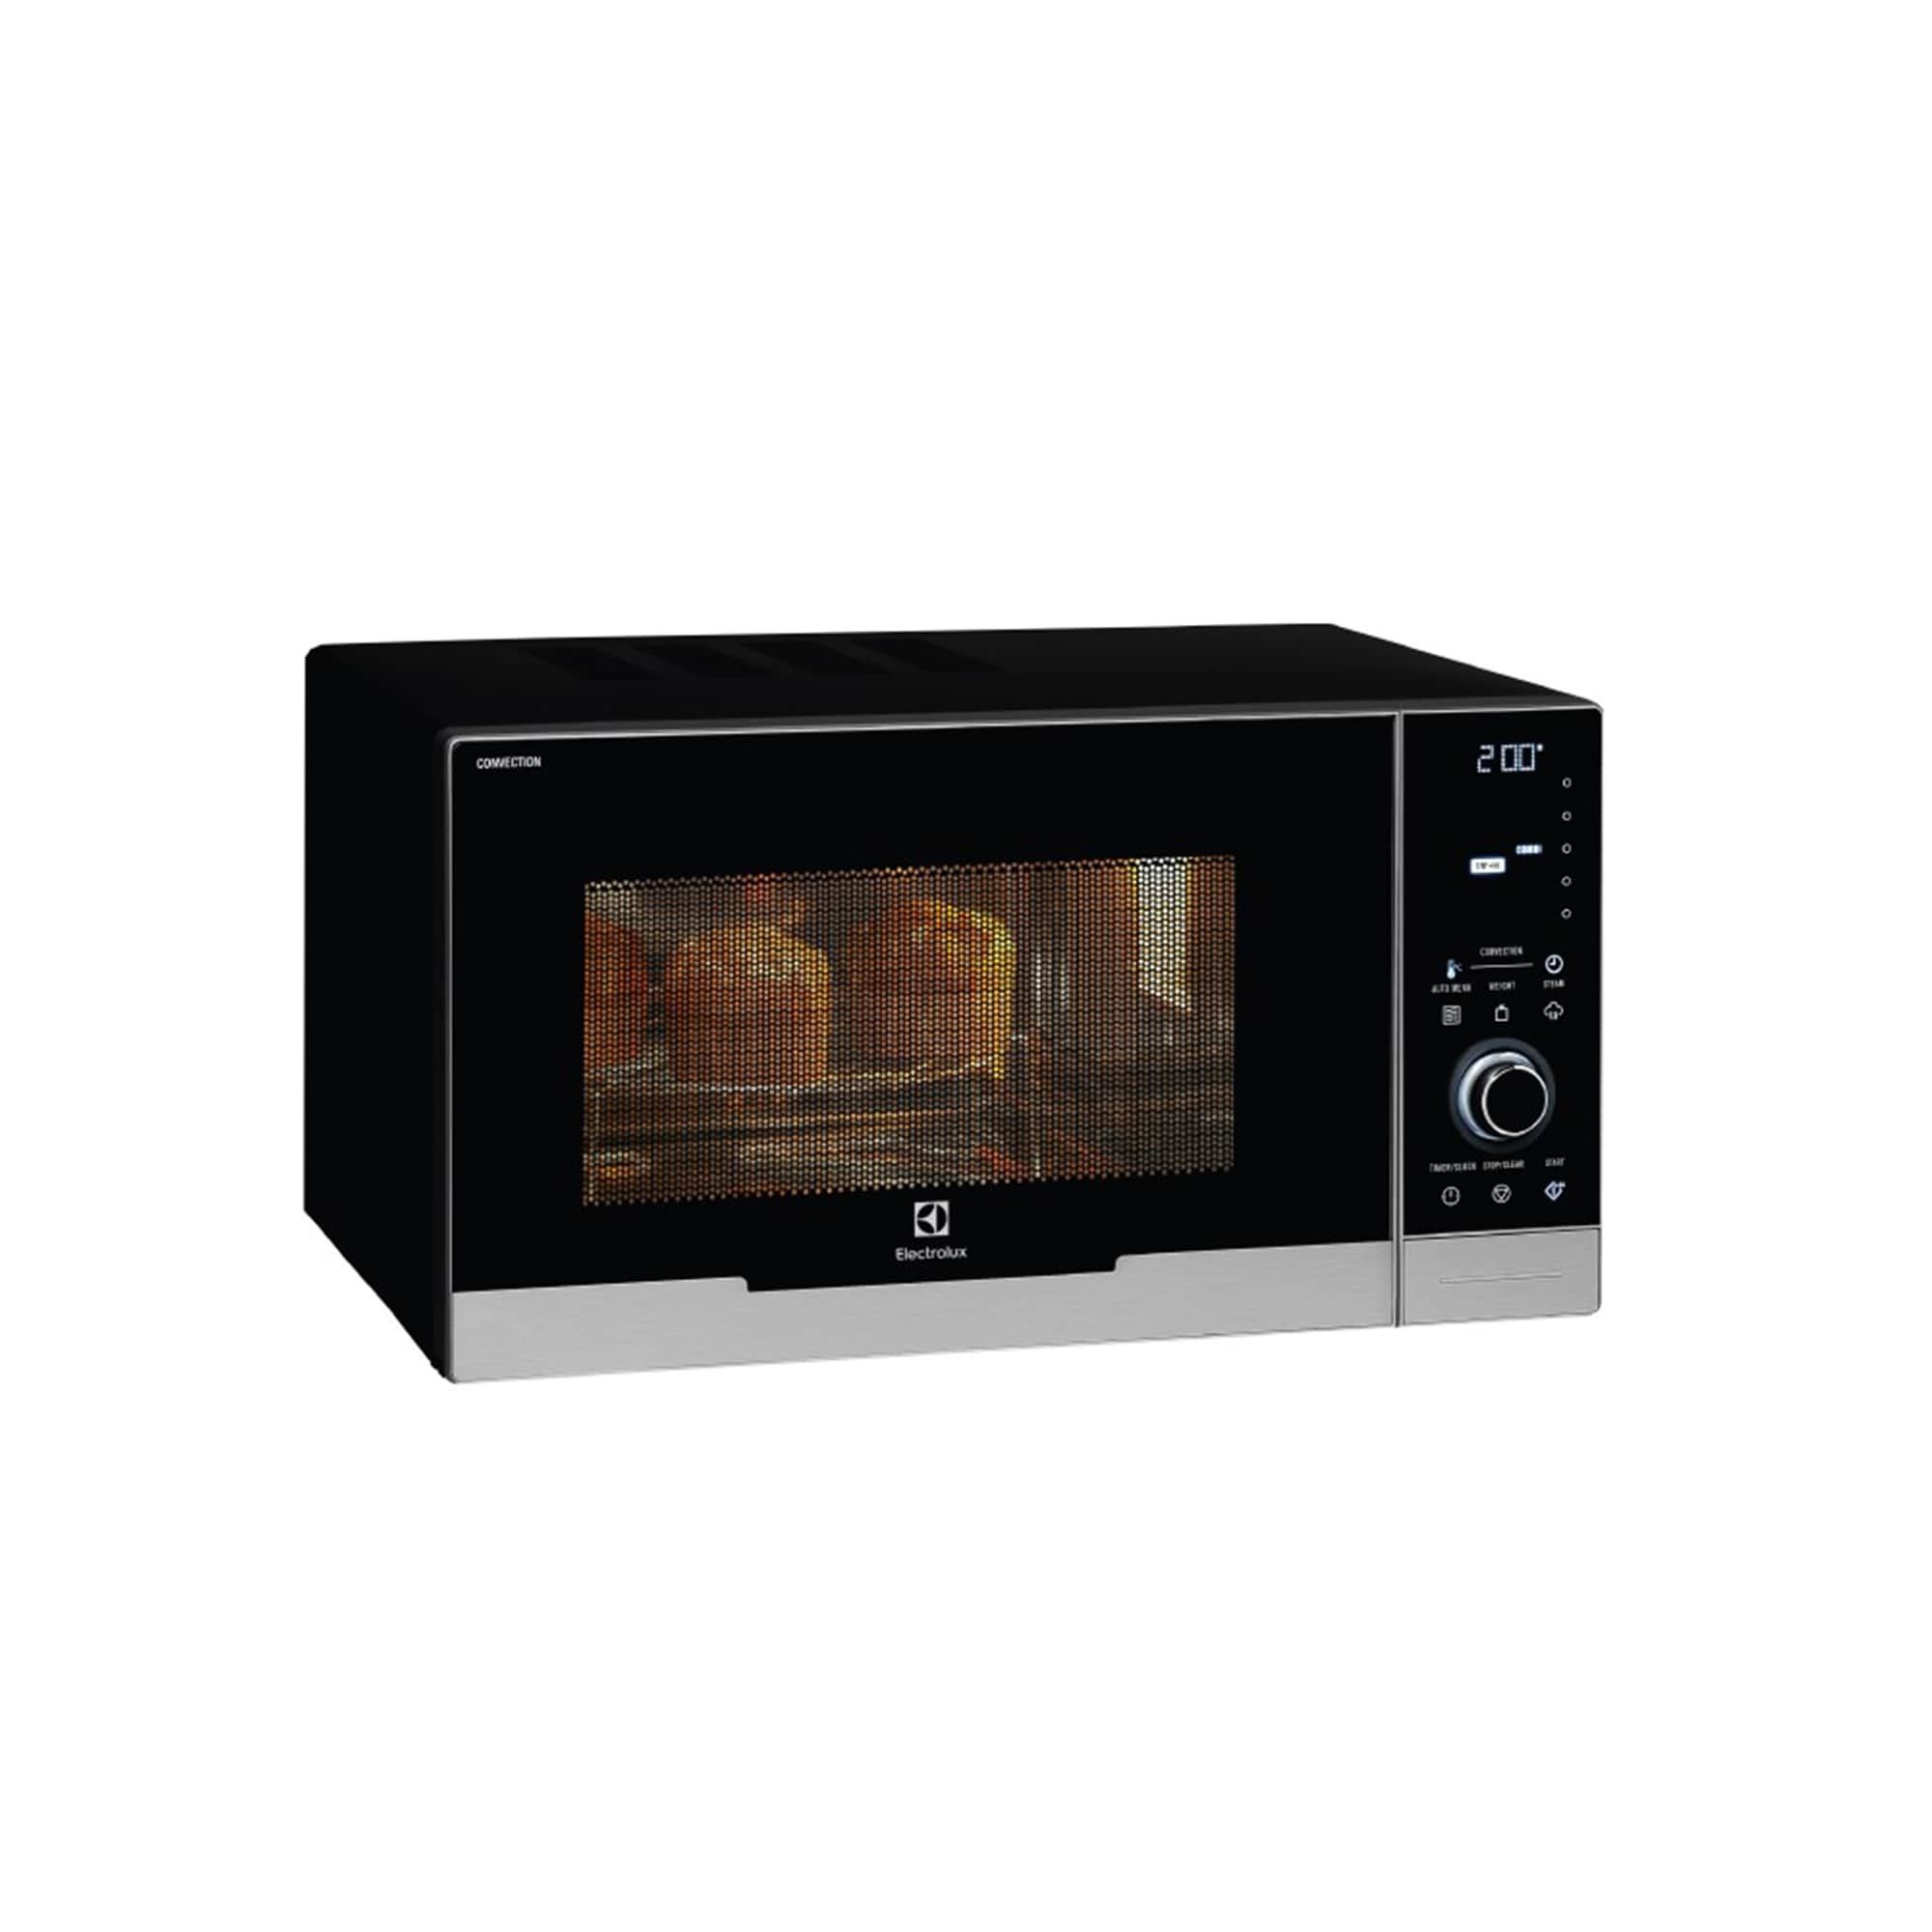 Electrolux Microwave Oven Bestmicrowave